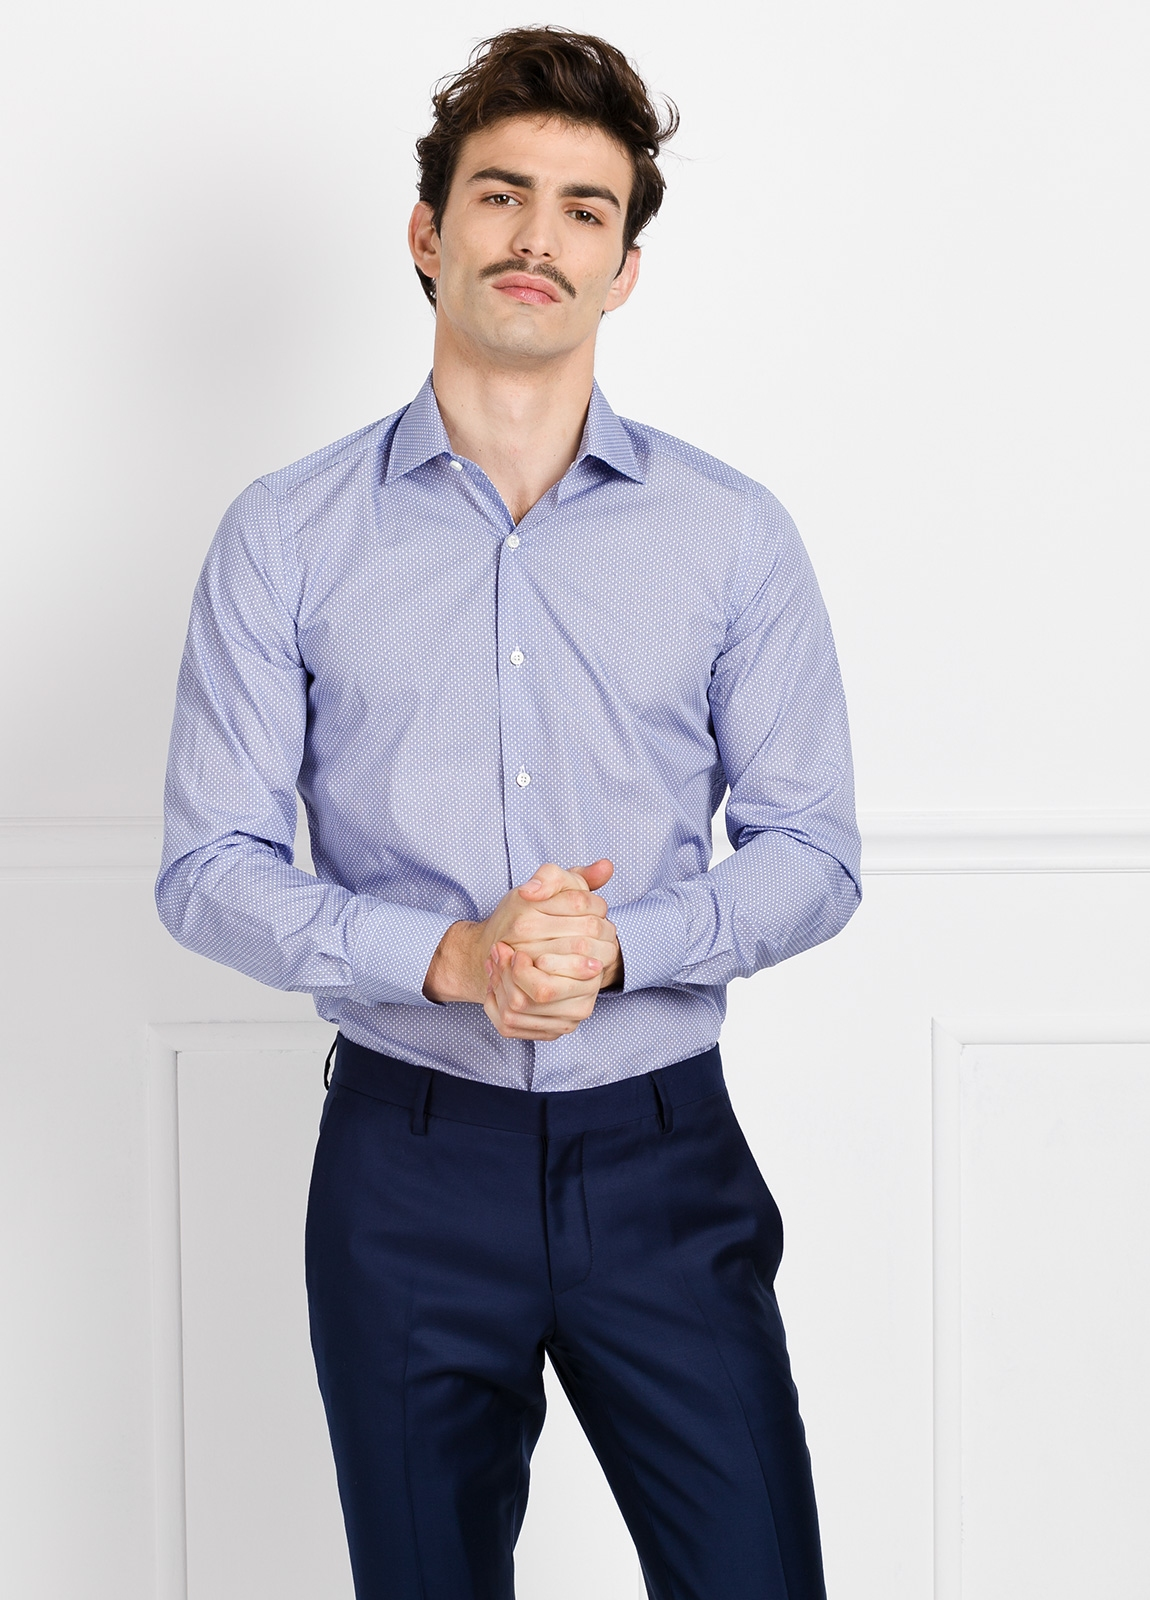 Camisa Formal Wear SLIM FIT cuello italiano modelo ROMA microdibujo color  azul. 100% Algodón. 665823c35dc